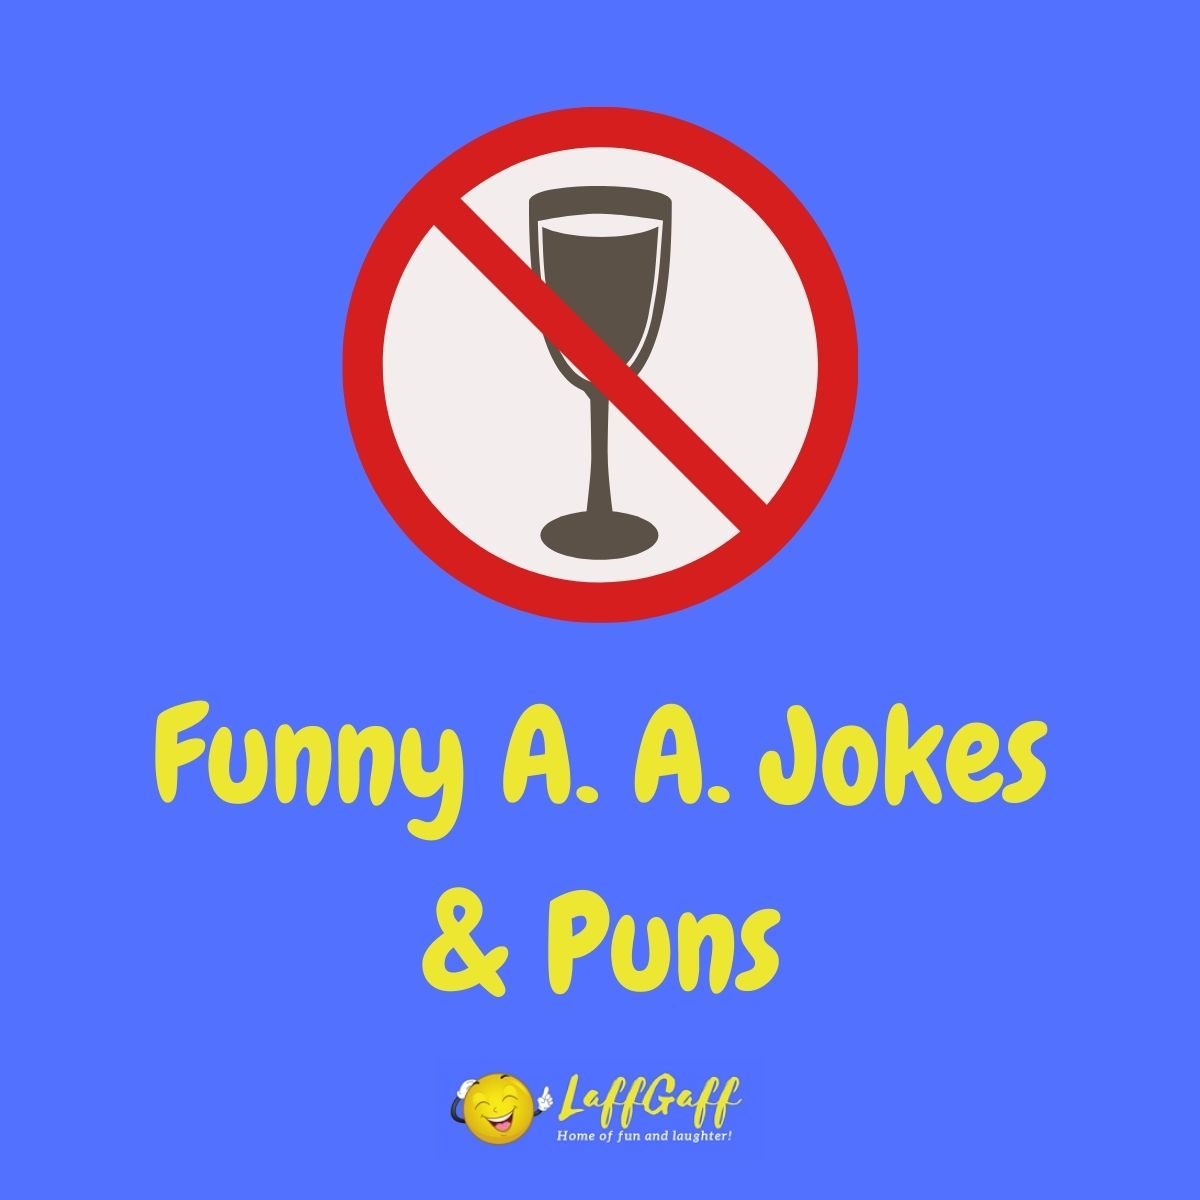 Featured image for a page of funny A. A. jokes and puns.